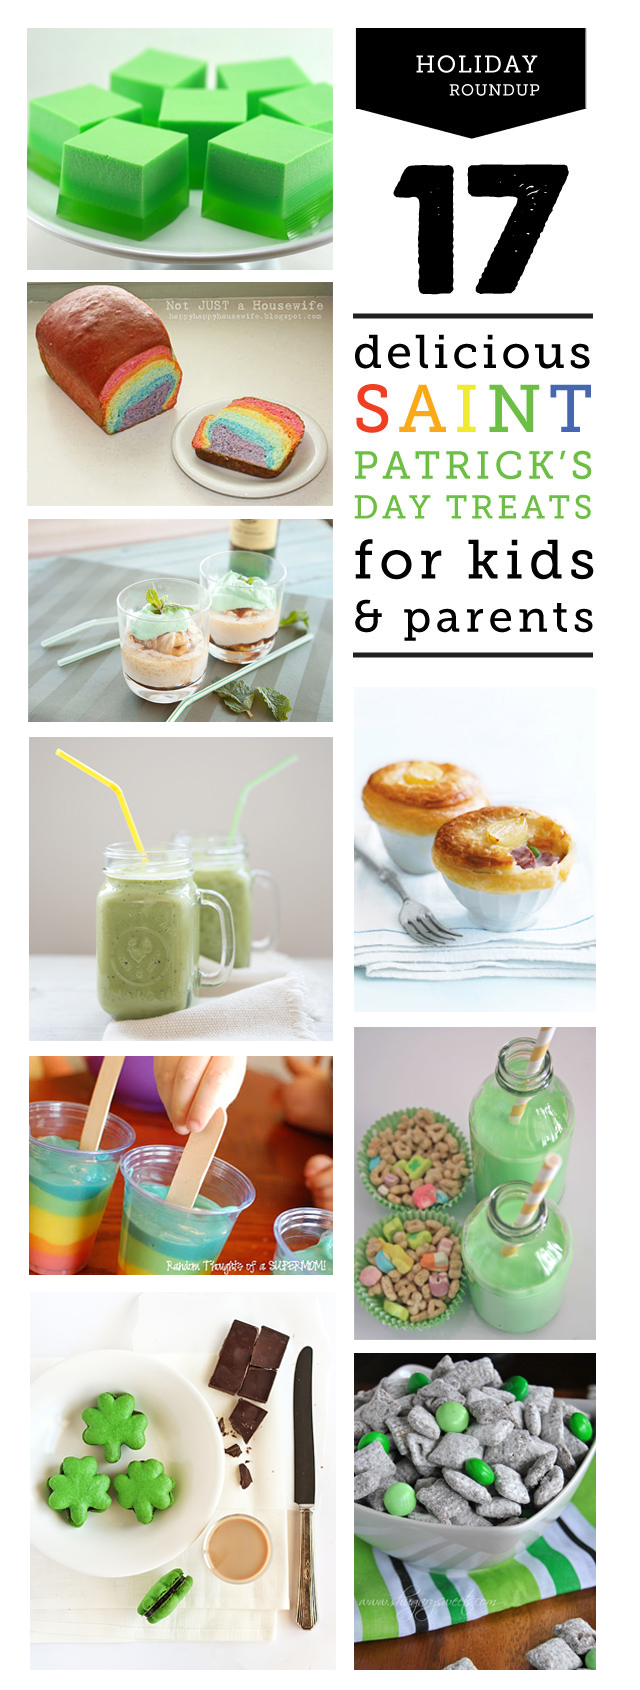 So many great St. Patrick's Day recipes here - definitely gonna make the rainbow bread and/or pudding pops with the kids and the Irish coffee sundaes for me and the hubs...gonna have to make the green velvet cupcakes too!